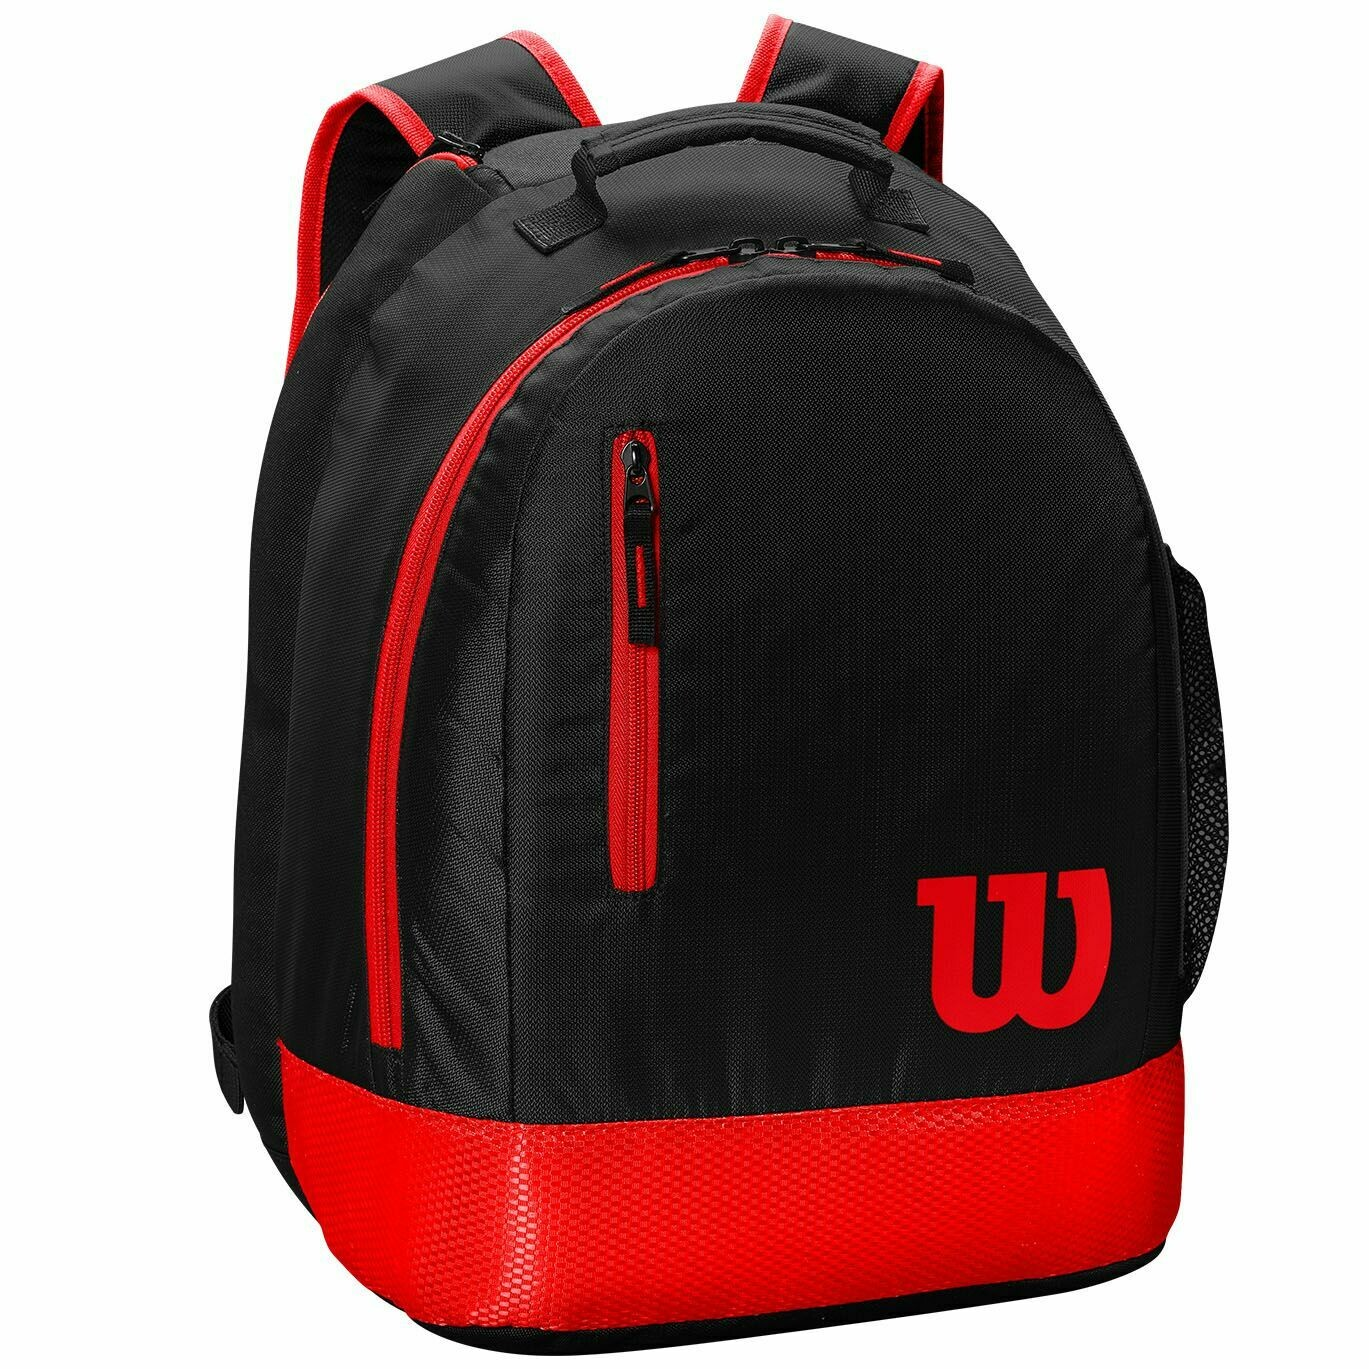 Wilson Youth Backpack - Black/Red